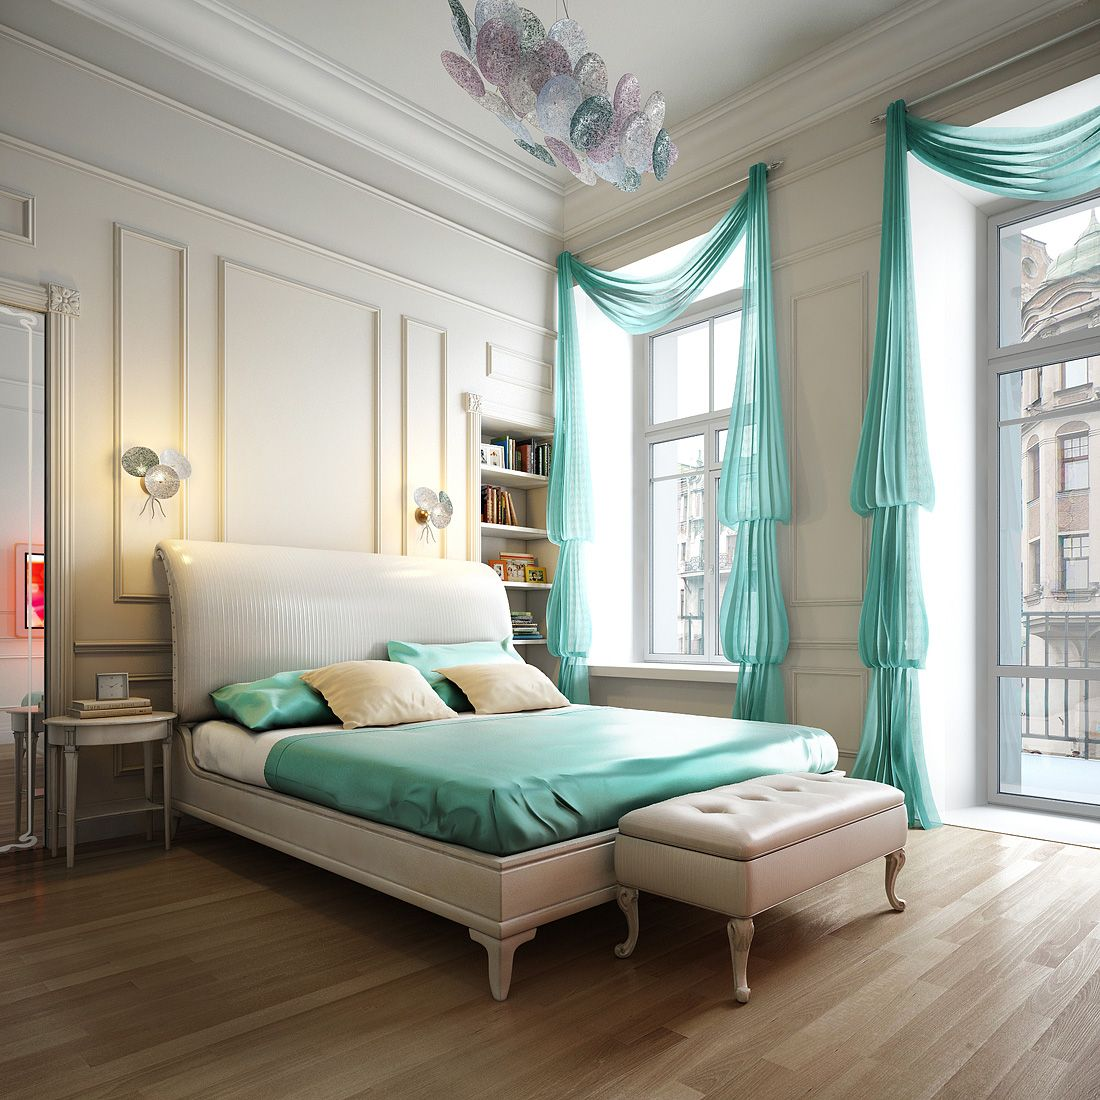 pinterest ideas its a colourful life turquoise - Pinterest Decorating Ideas Bedroom